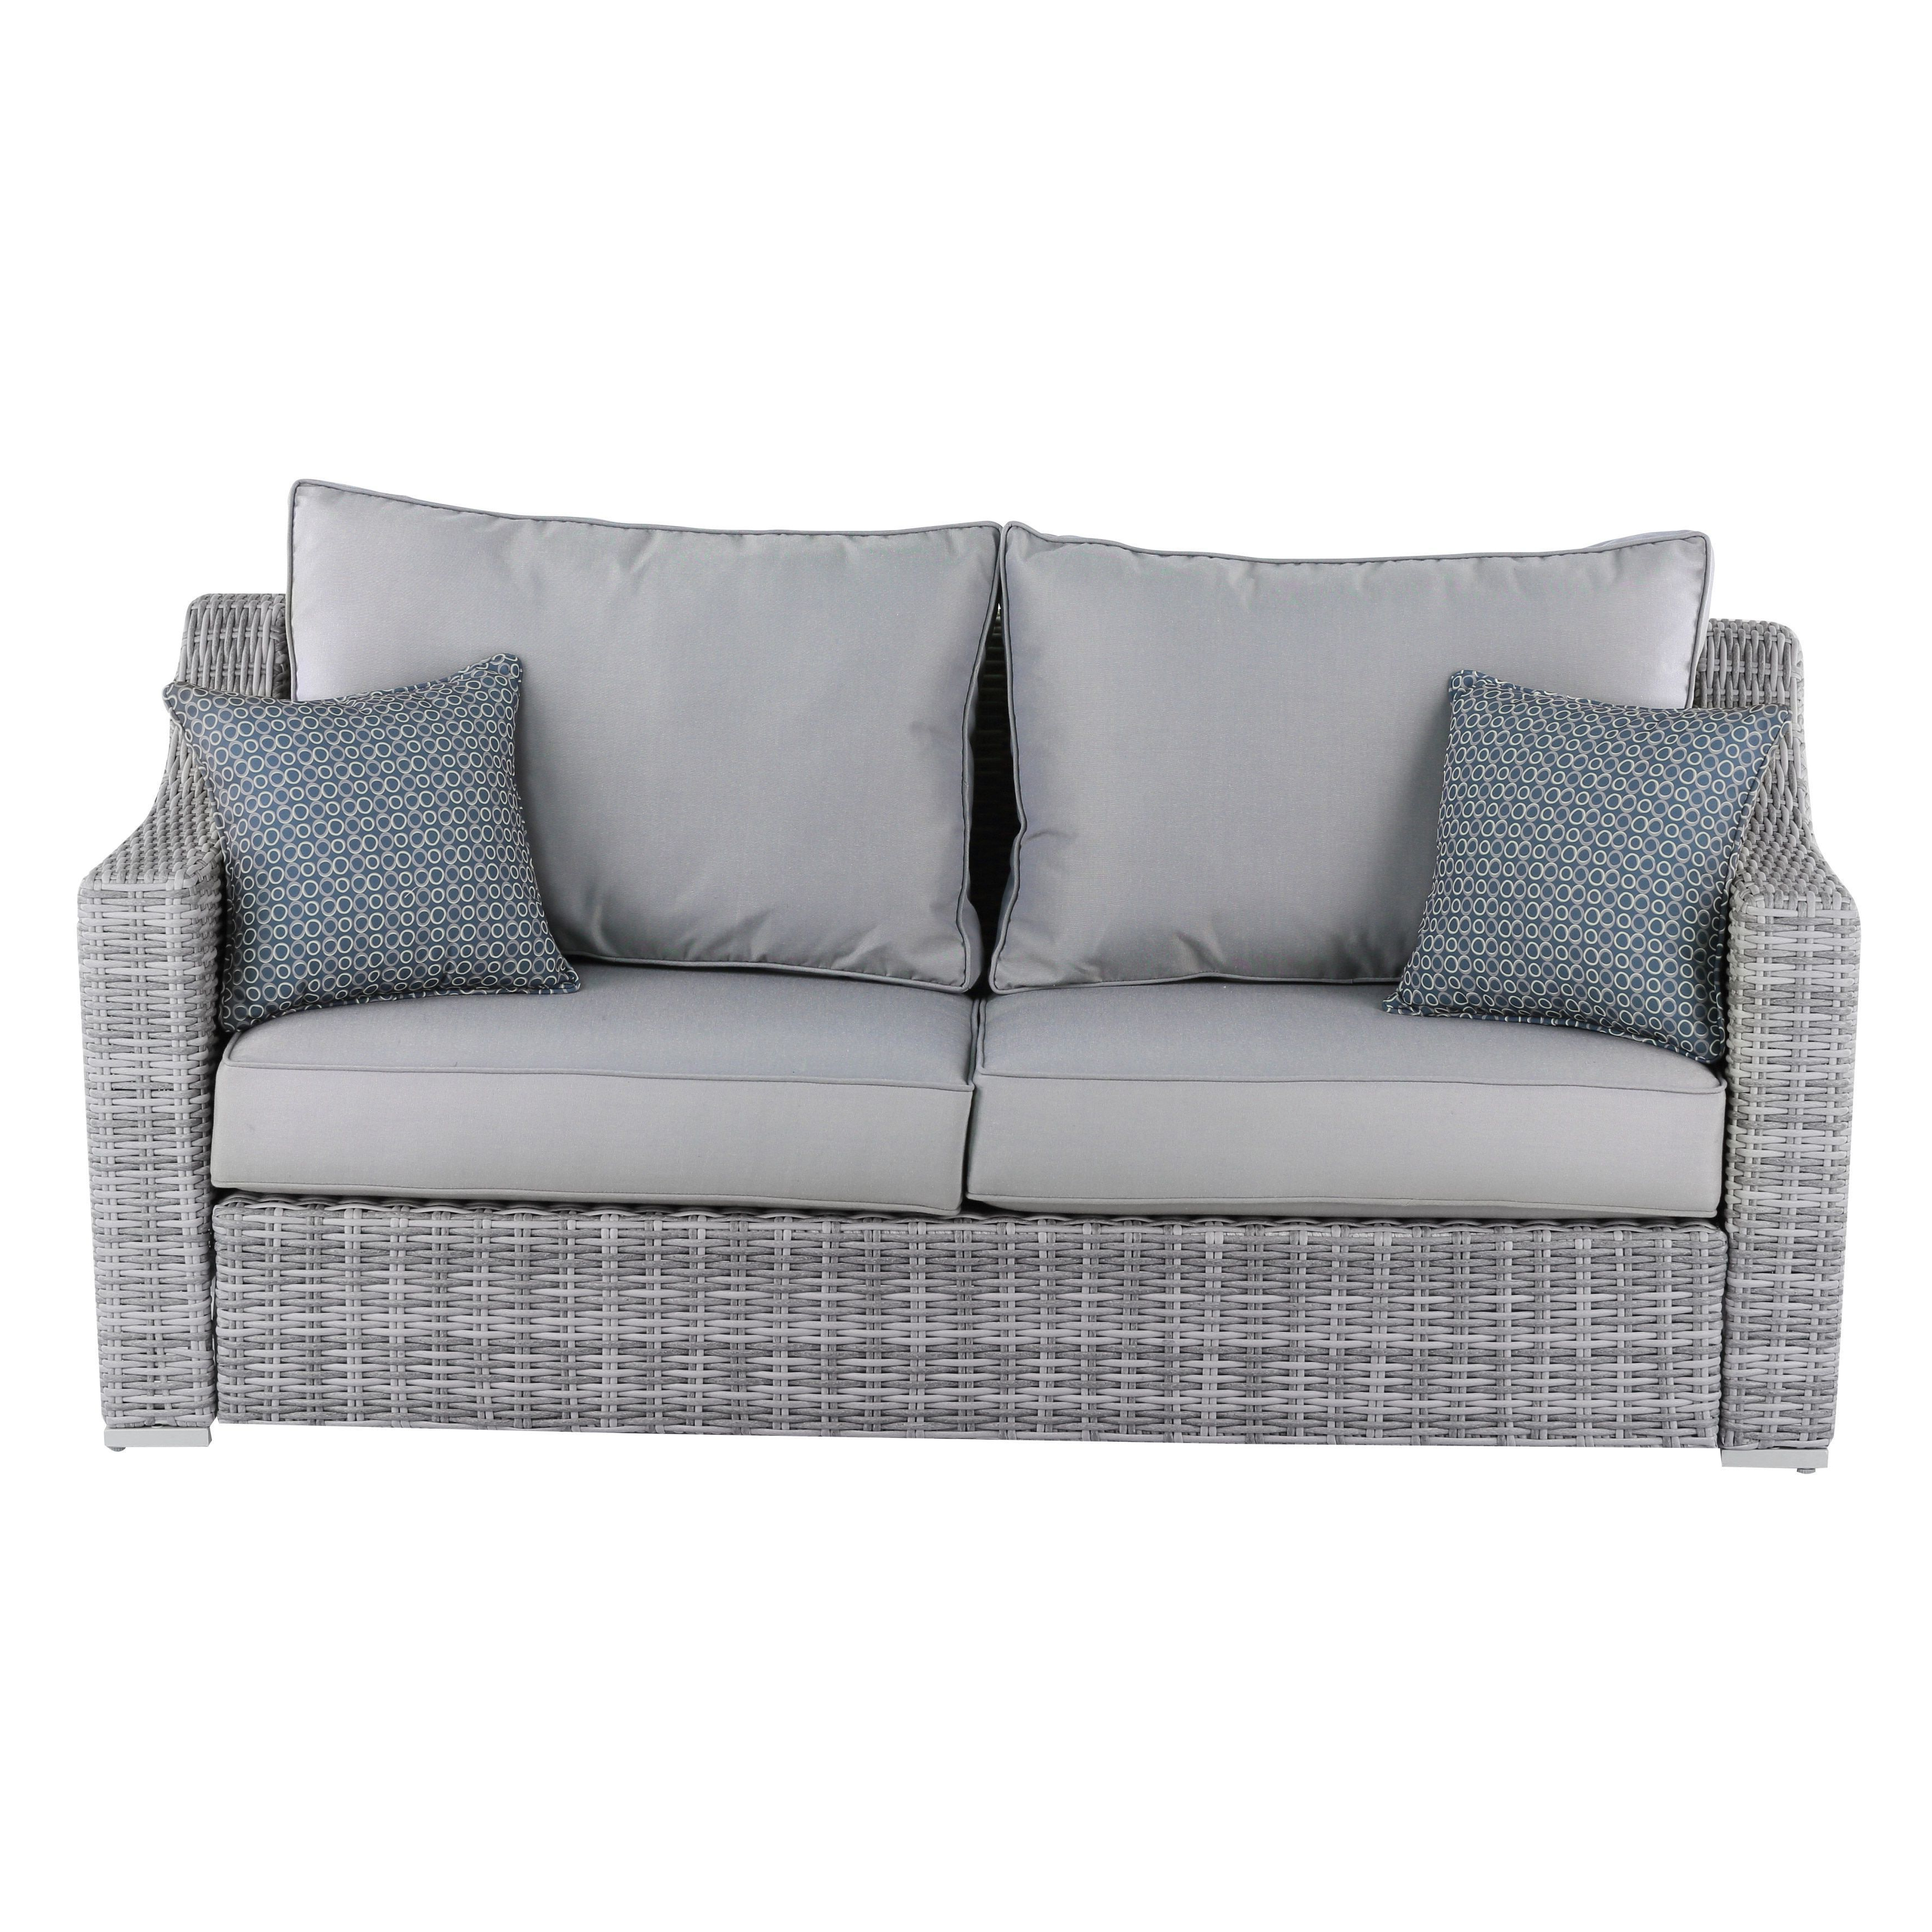 Elle Decor Vallauris Outdoor Sofa (Elle Dcor Vallauris Throughout Most Recent Huddleson Loveseats With Cushion (View 4 of 20)